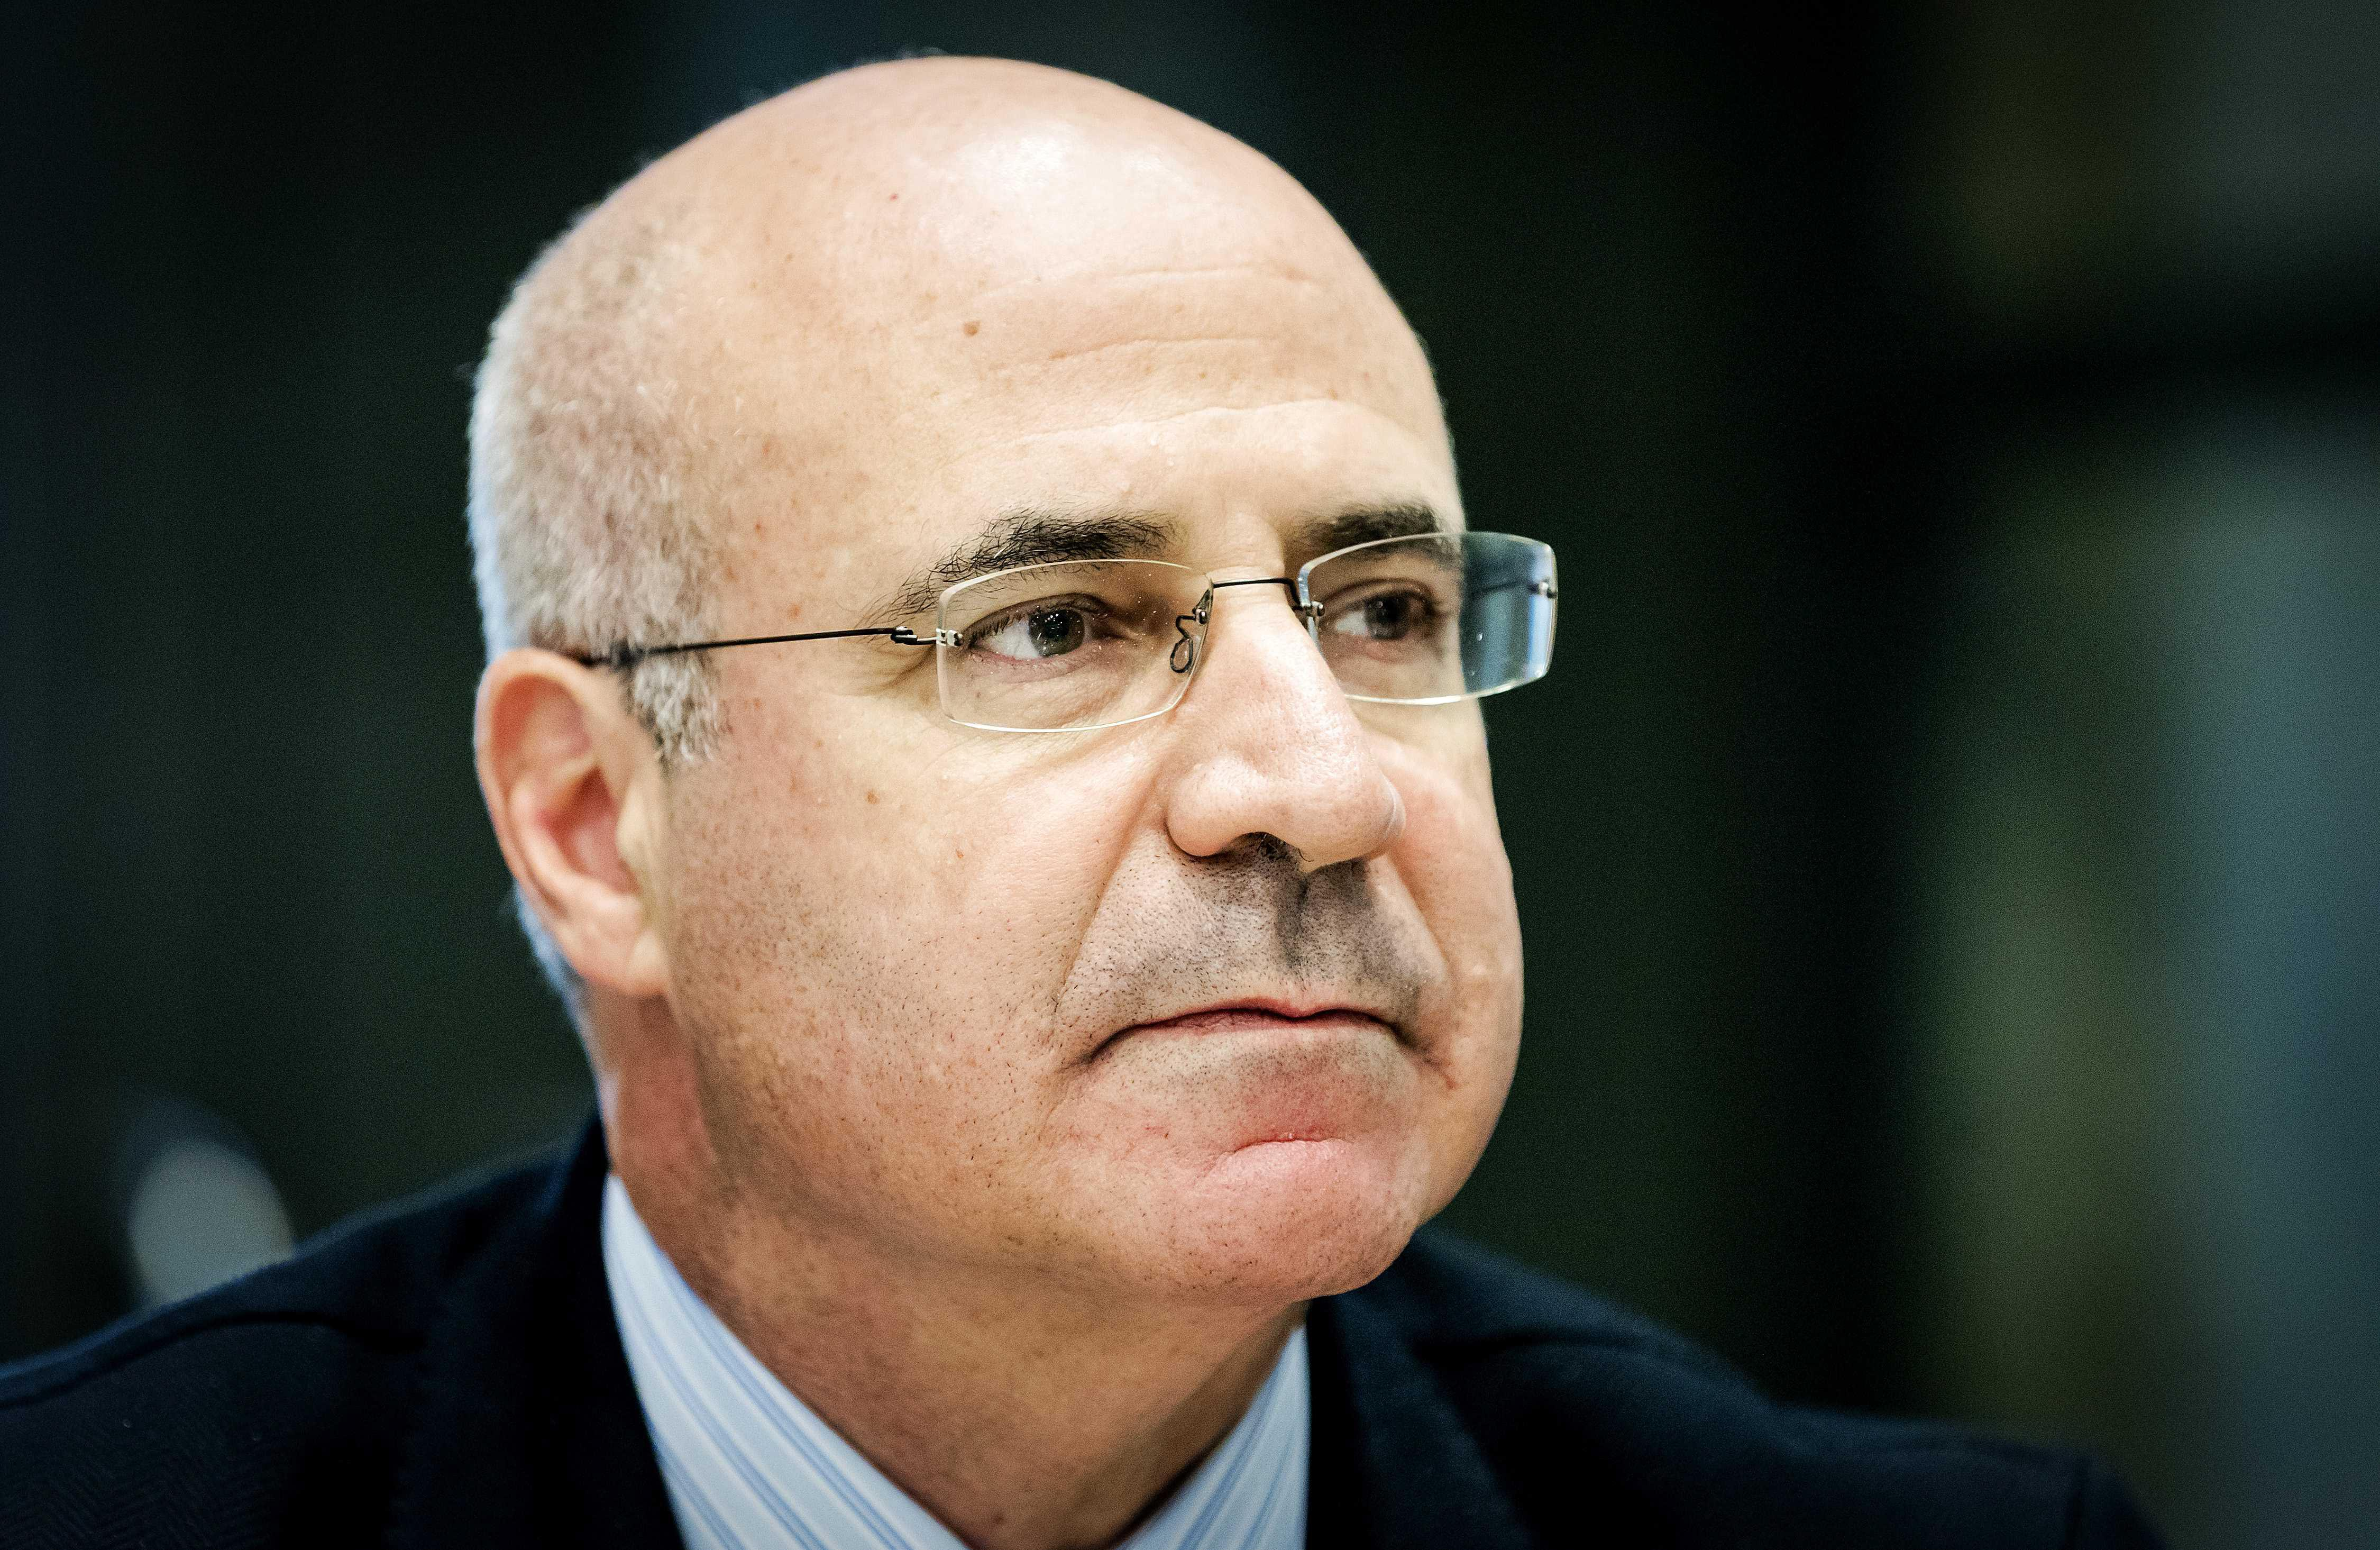 British Putin critic Bill Browder arrested in Spain over Russia tax fraud charges after Kremlin cronies accused of him of being a serial killer